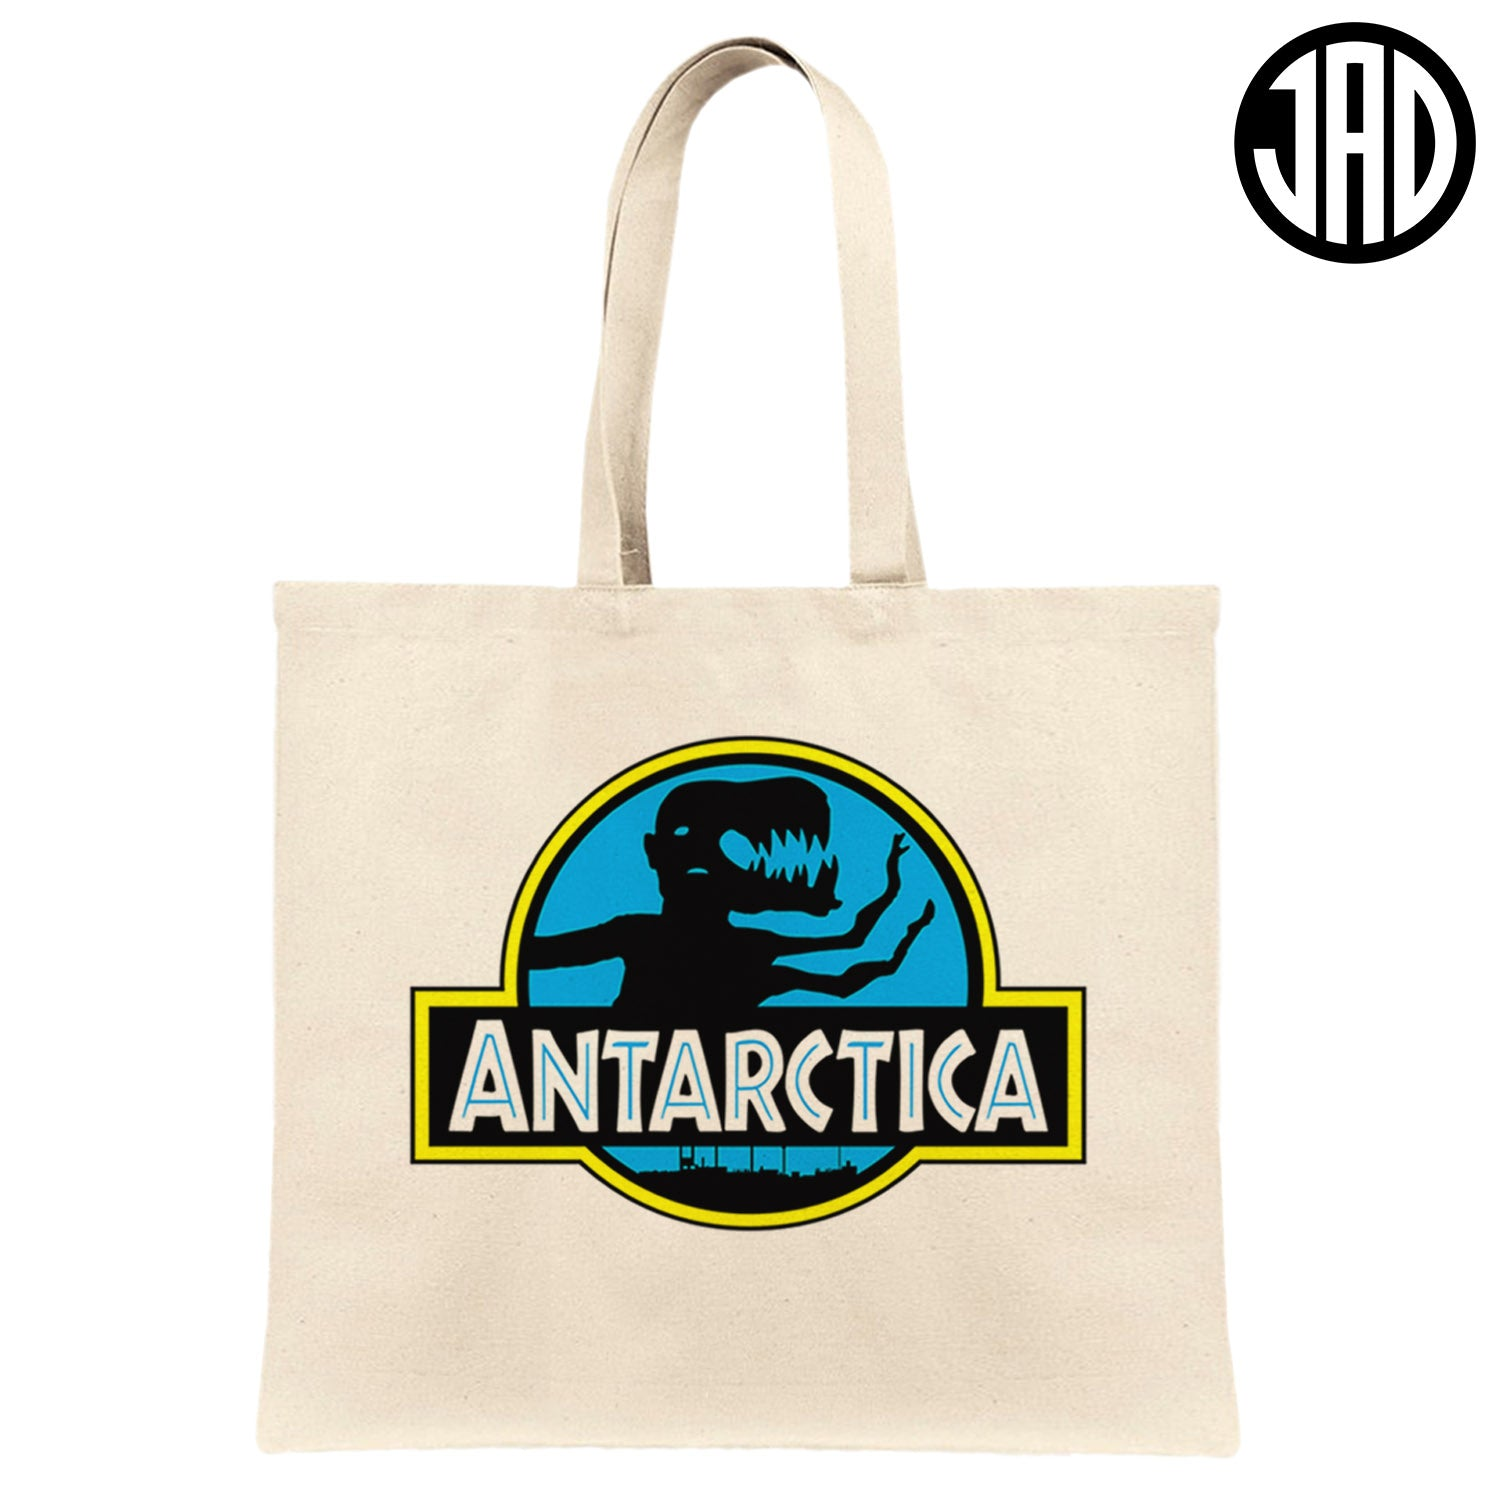 Antarctica - Canvas Tote Bag